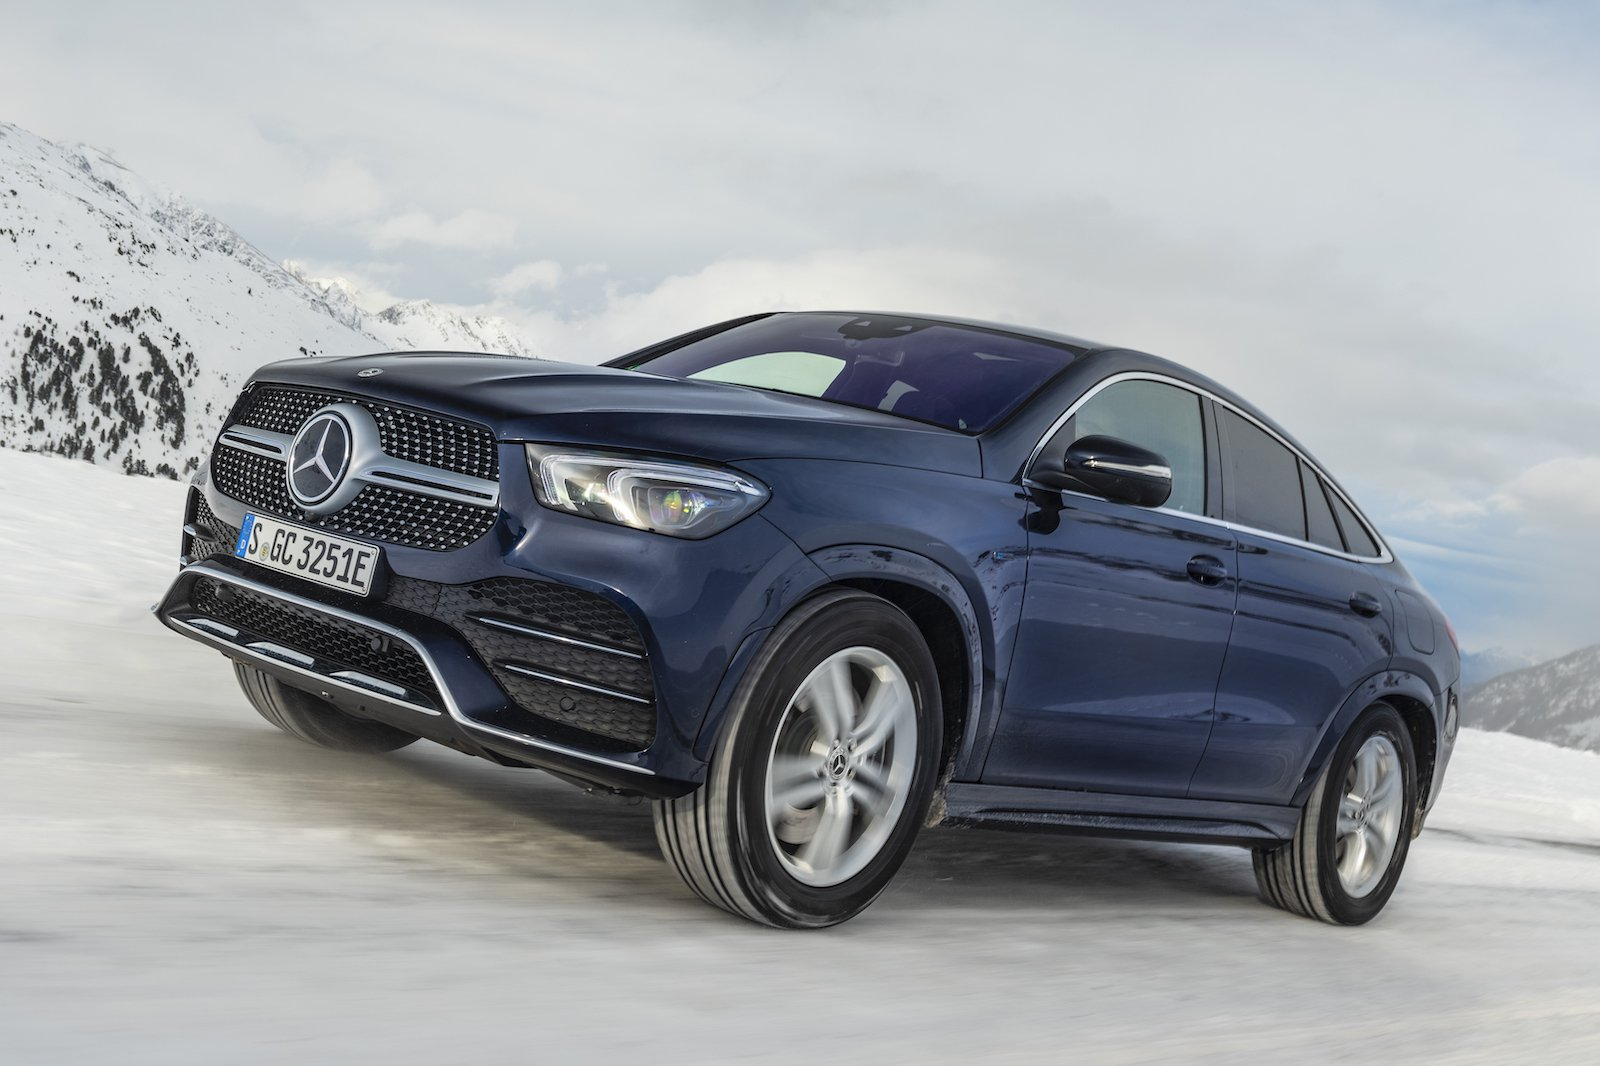 2020 Mercedes GLE Coupe front 3/4